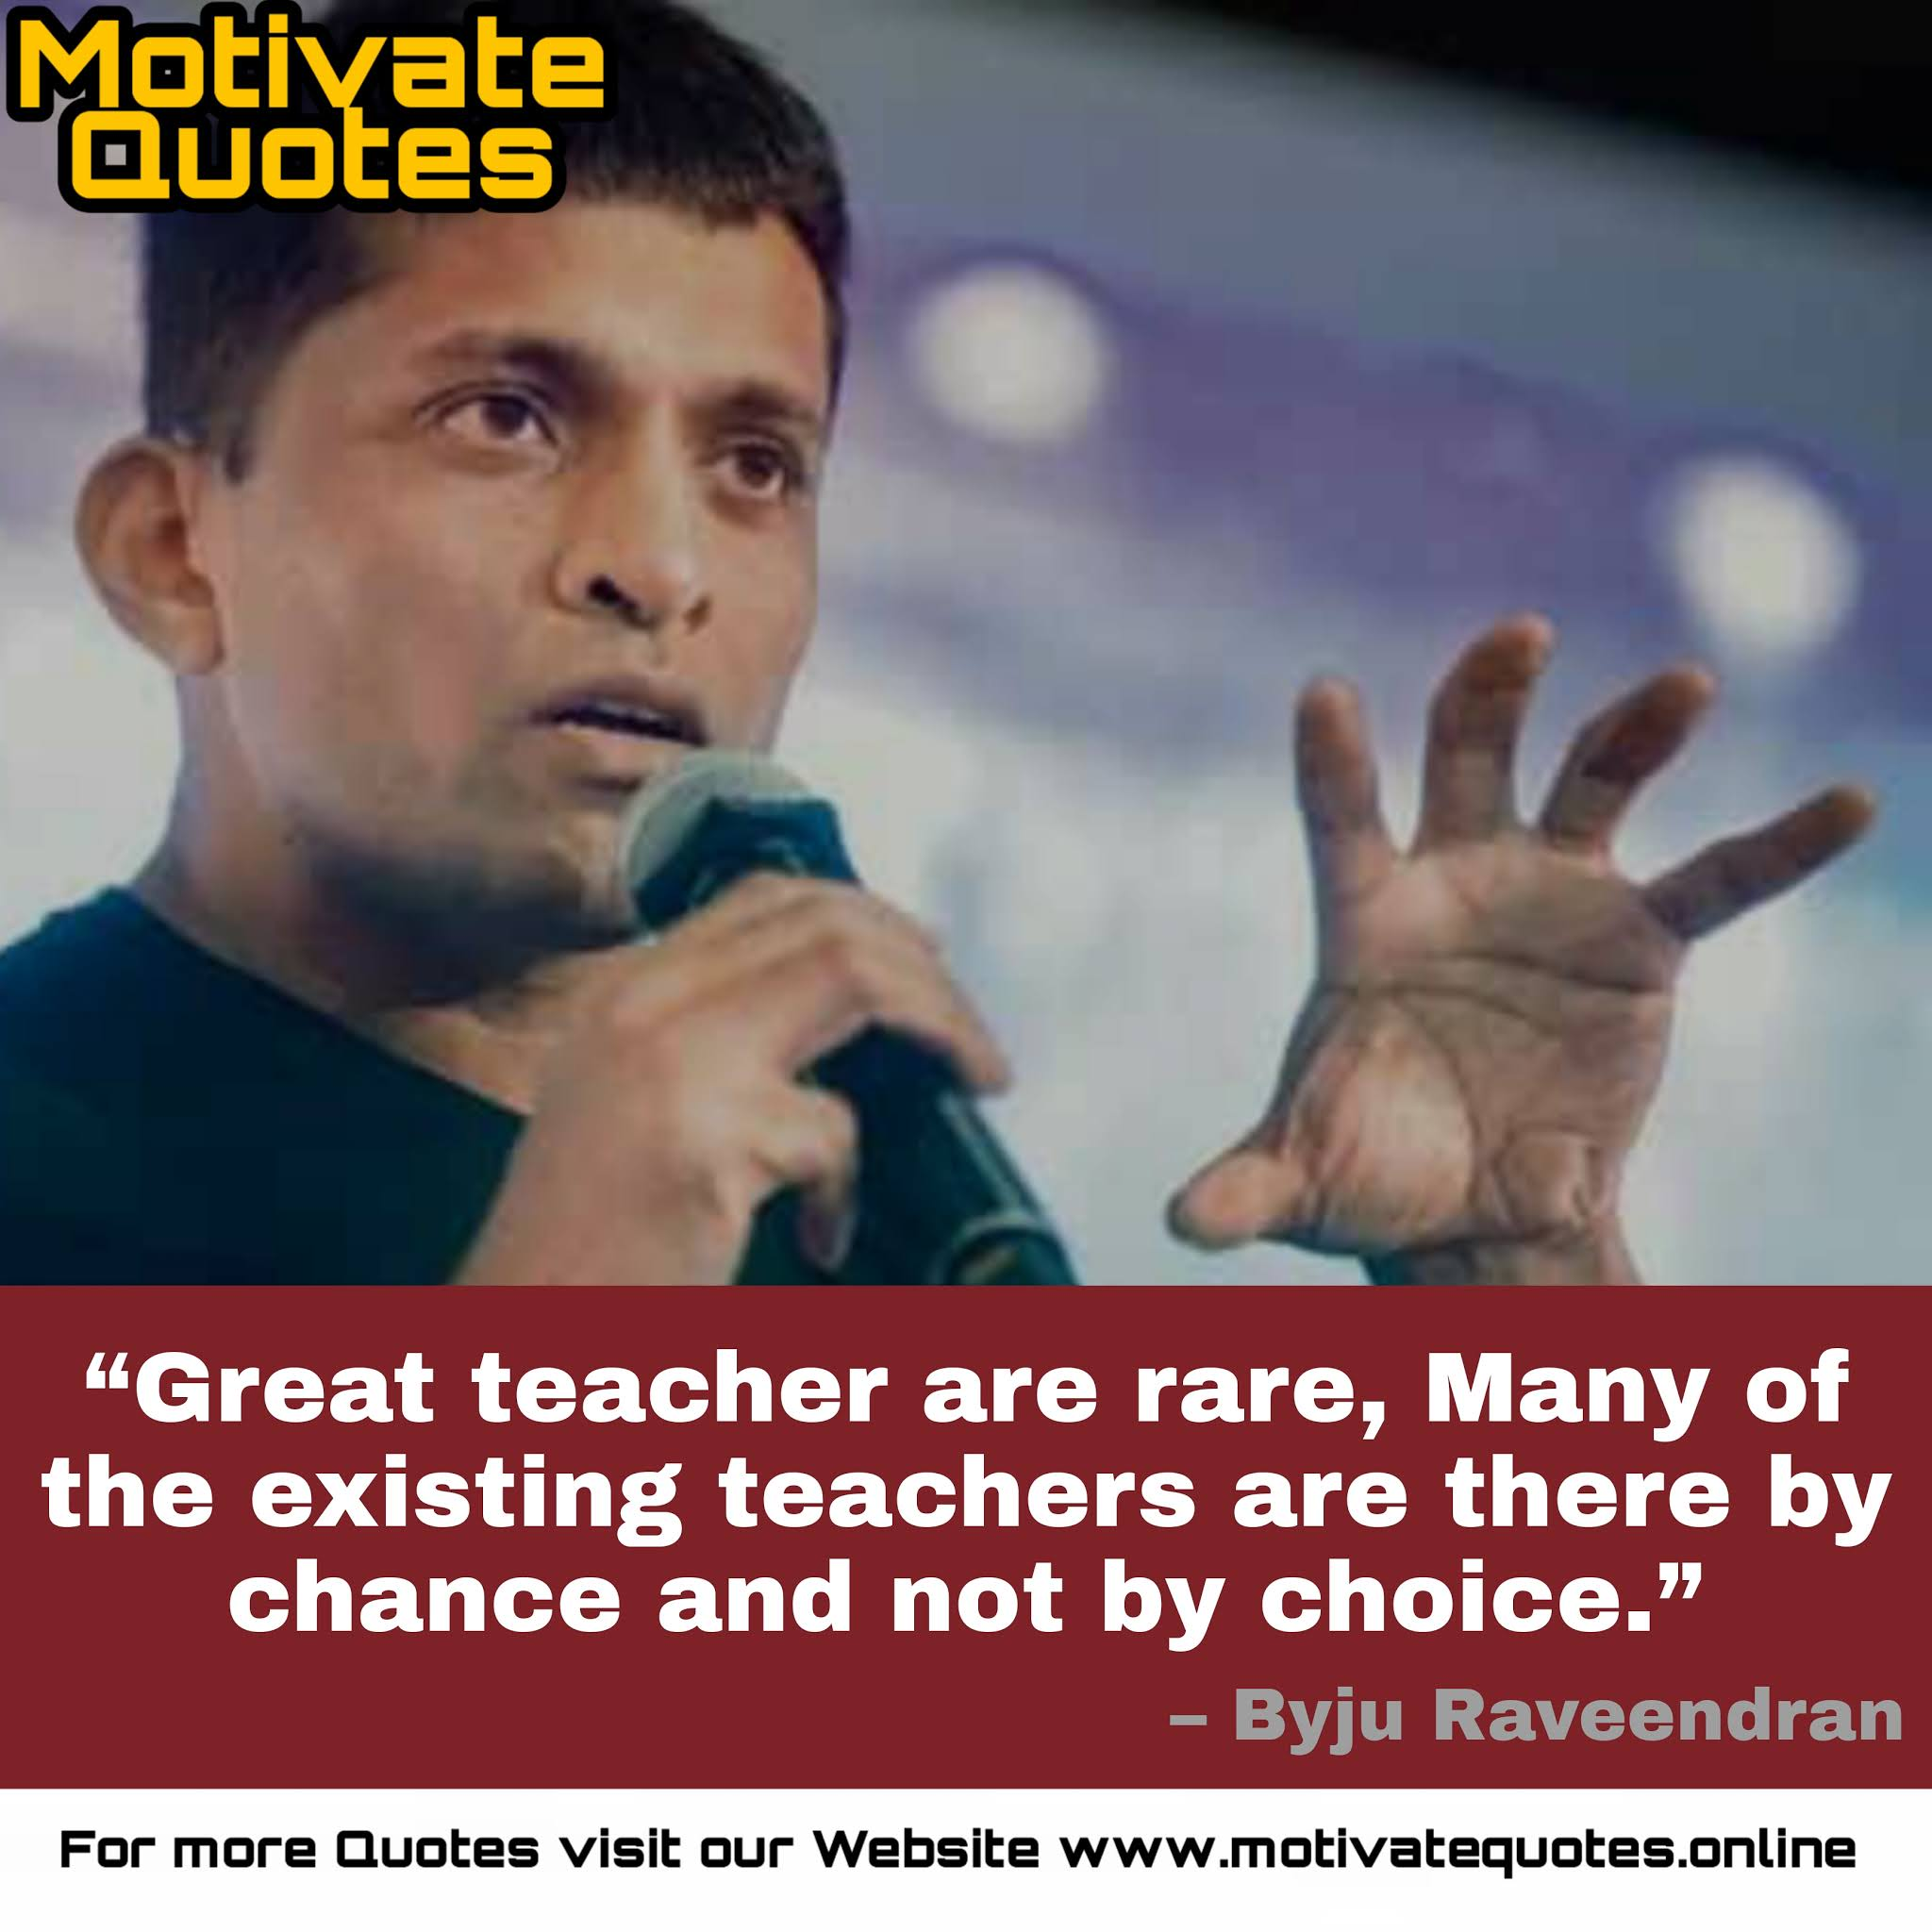 Motivational Quotes by Byju Raveendran founder and CEO of Byju's learning platform